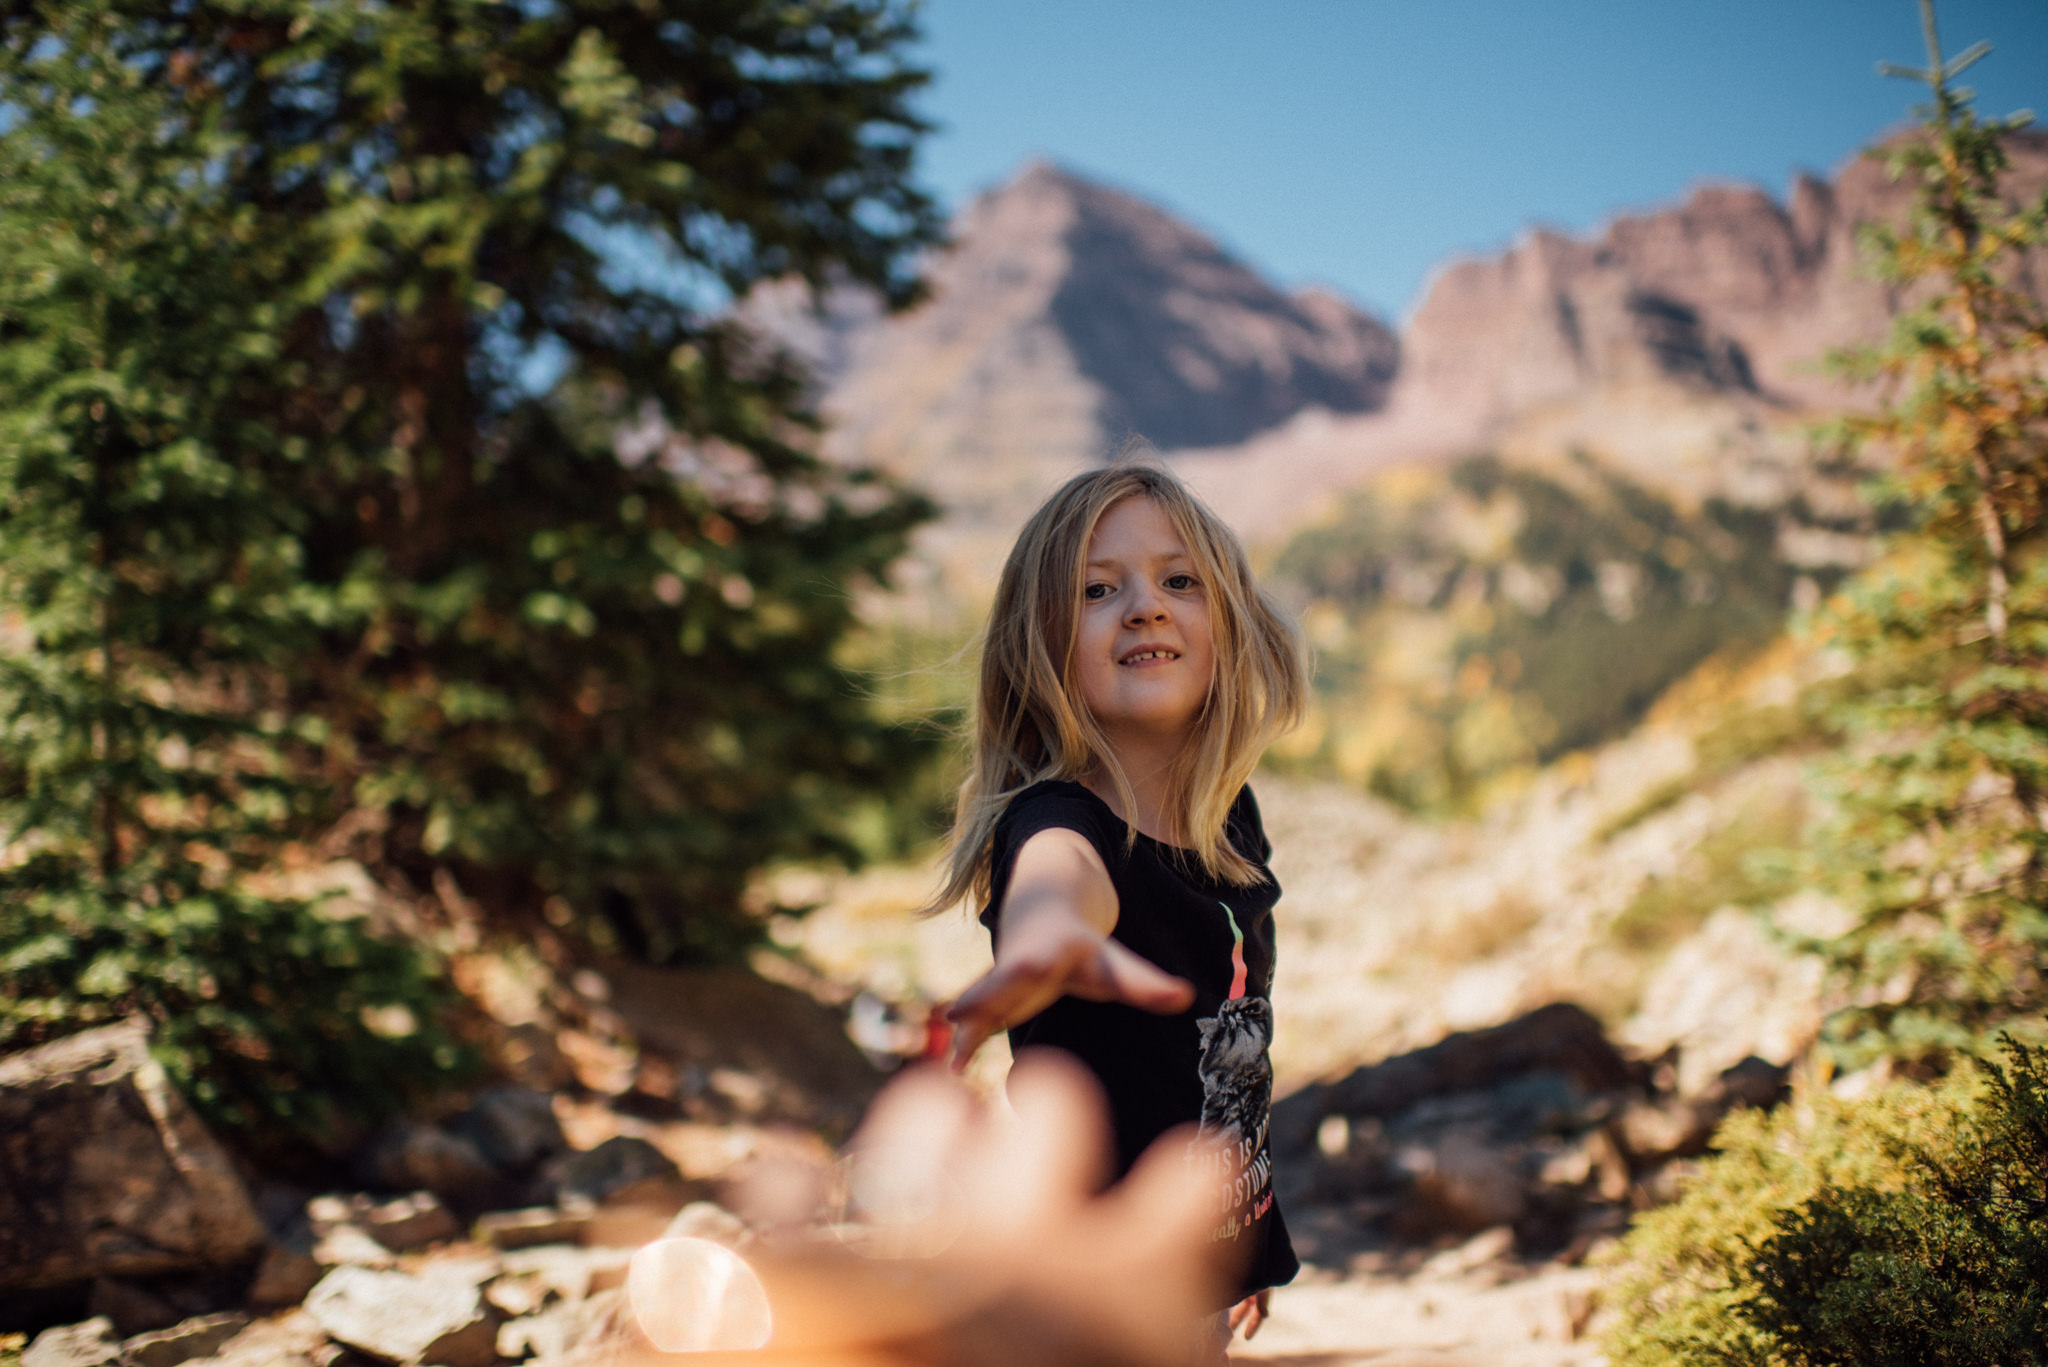 Don't let this fool you, she complained the entire way up. But was excited we were almost to the top and ending the hike.